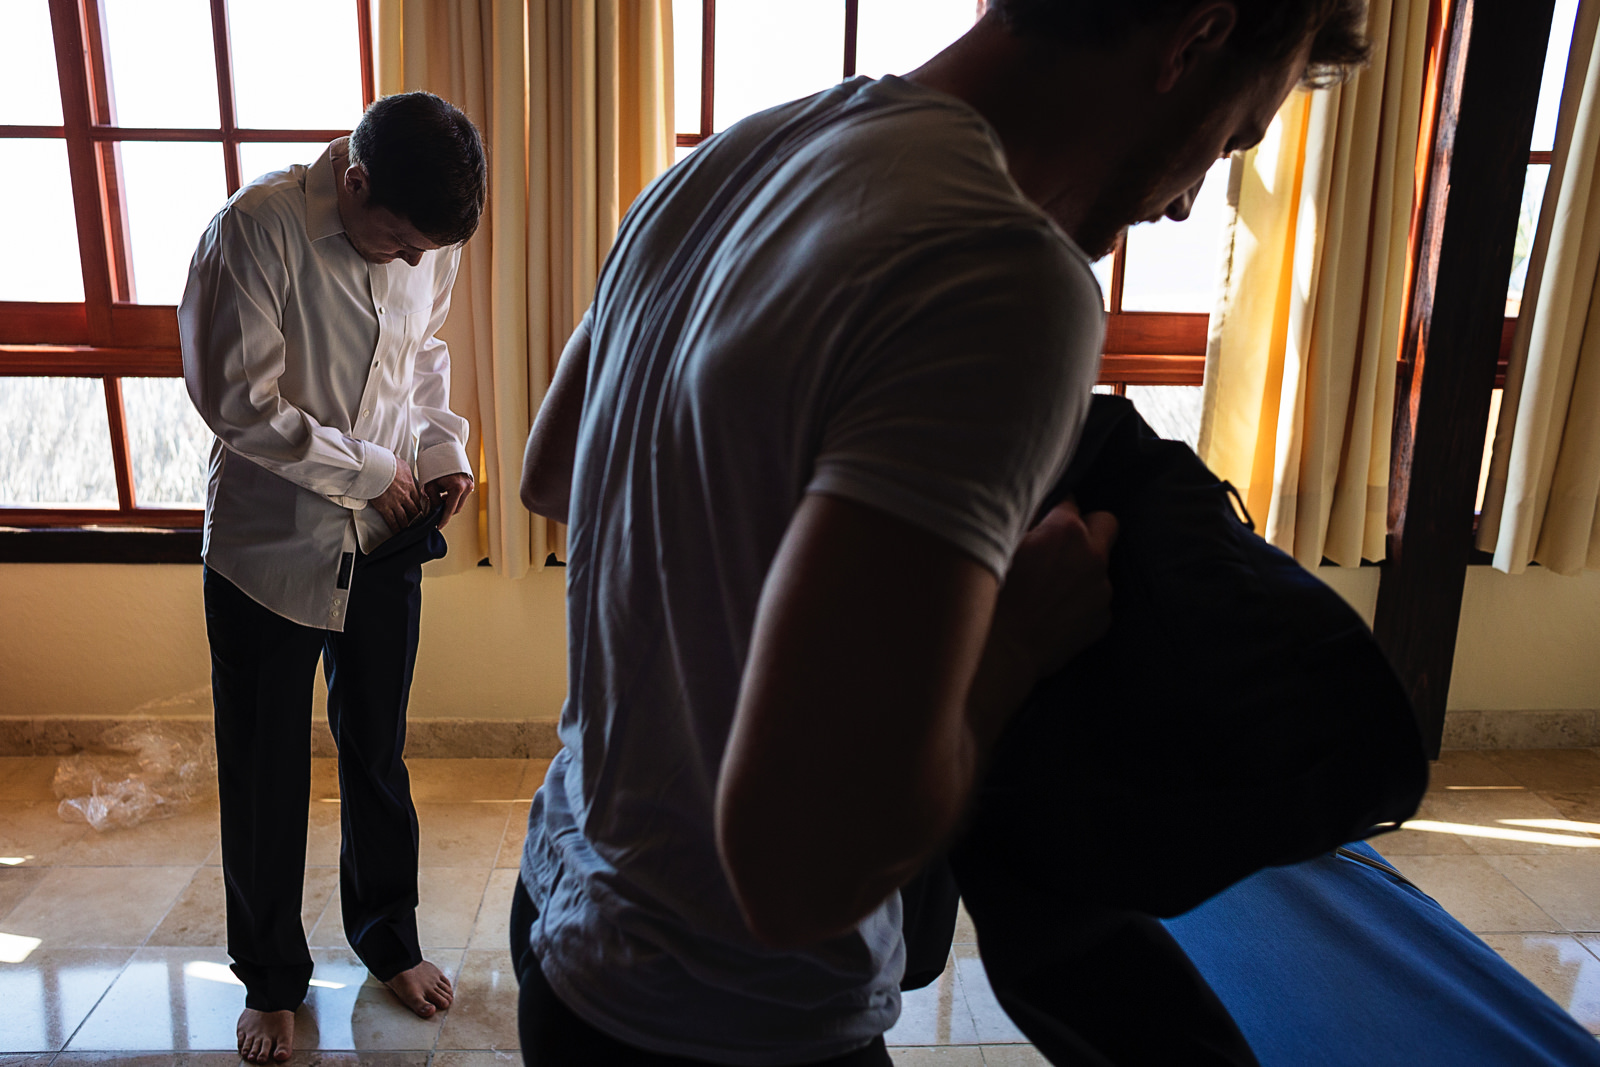 groom-getting-dressed-groomsman-playa-fiesta-wedding.jpg